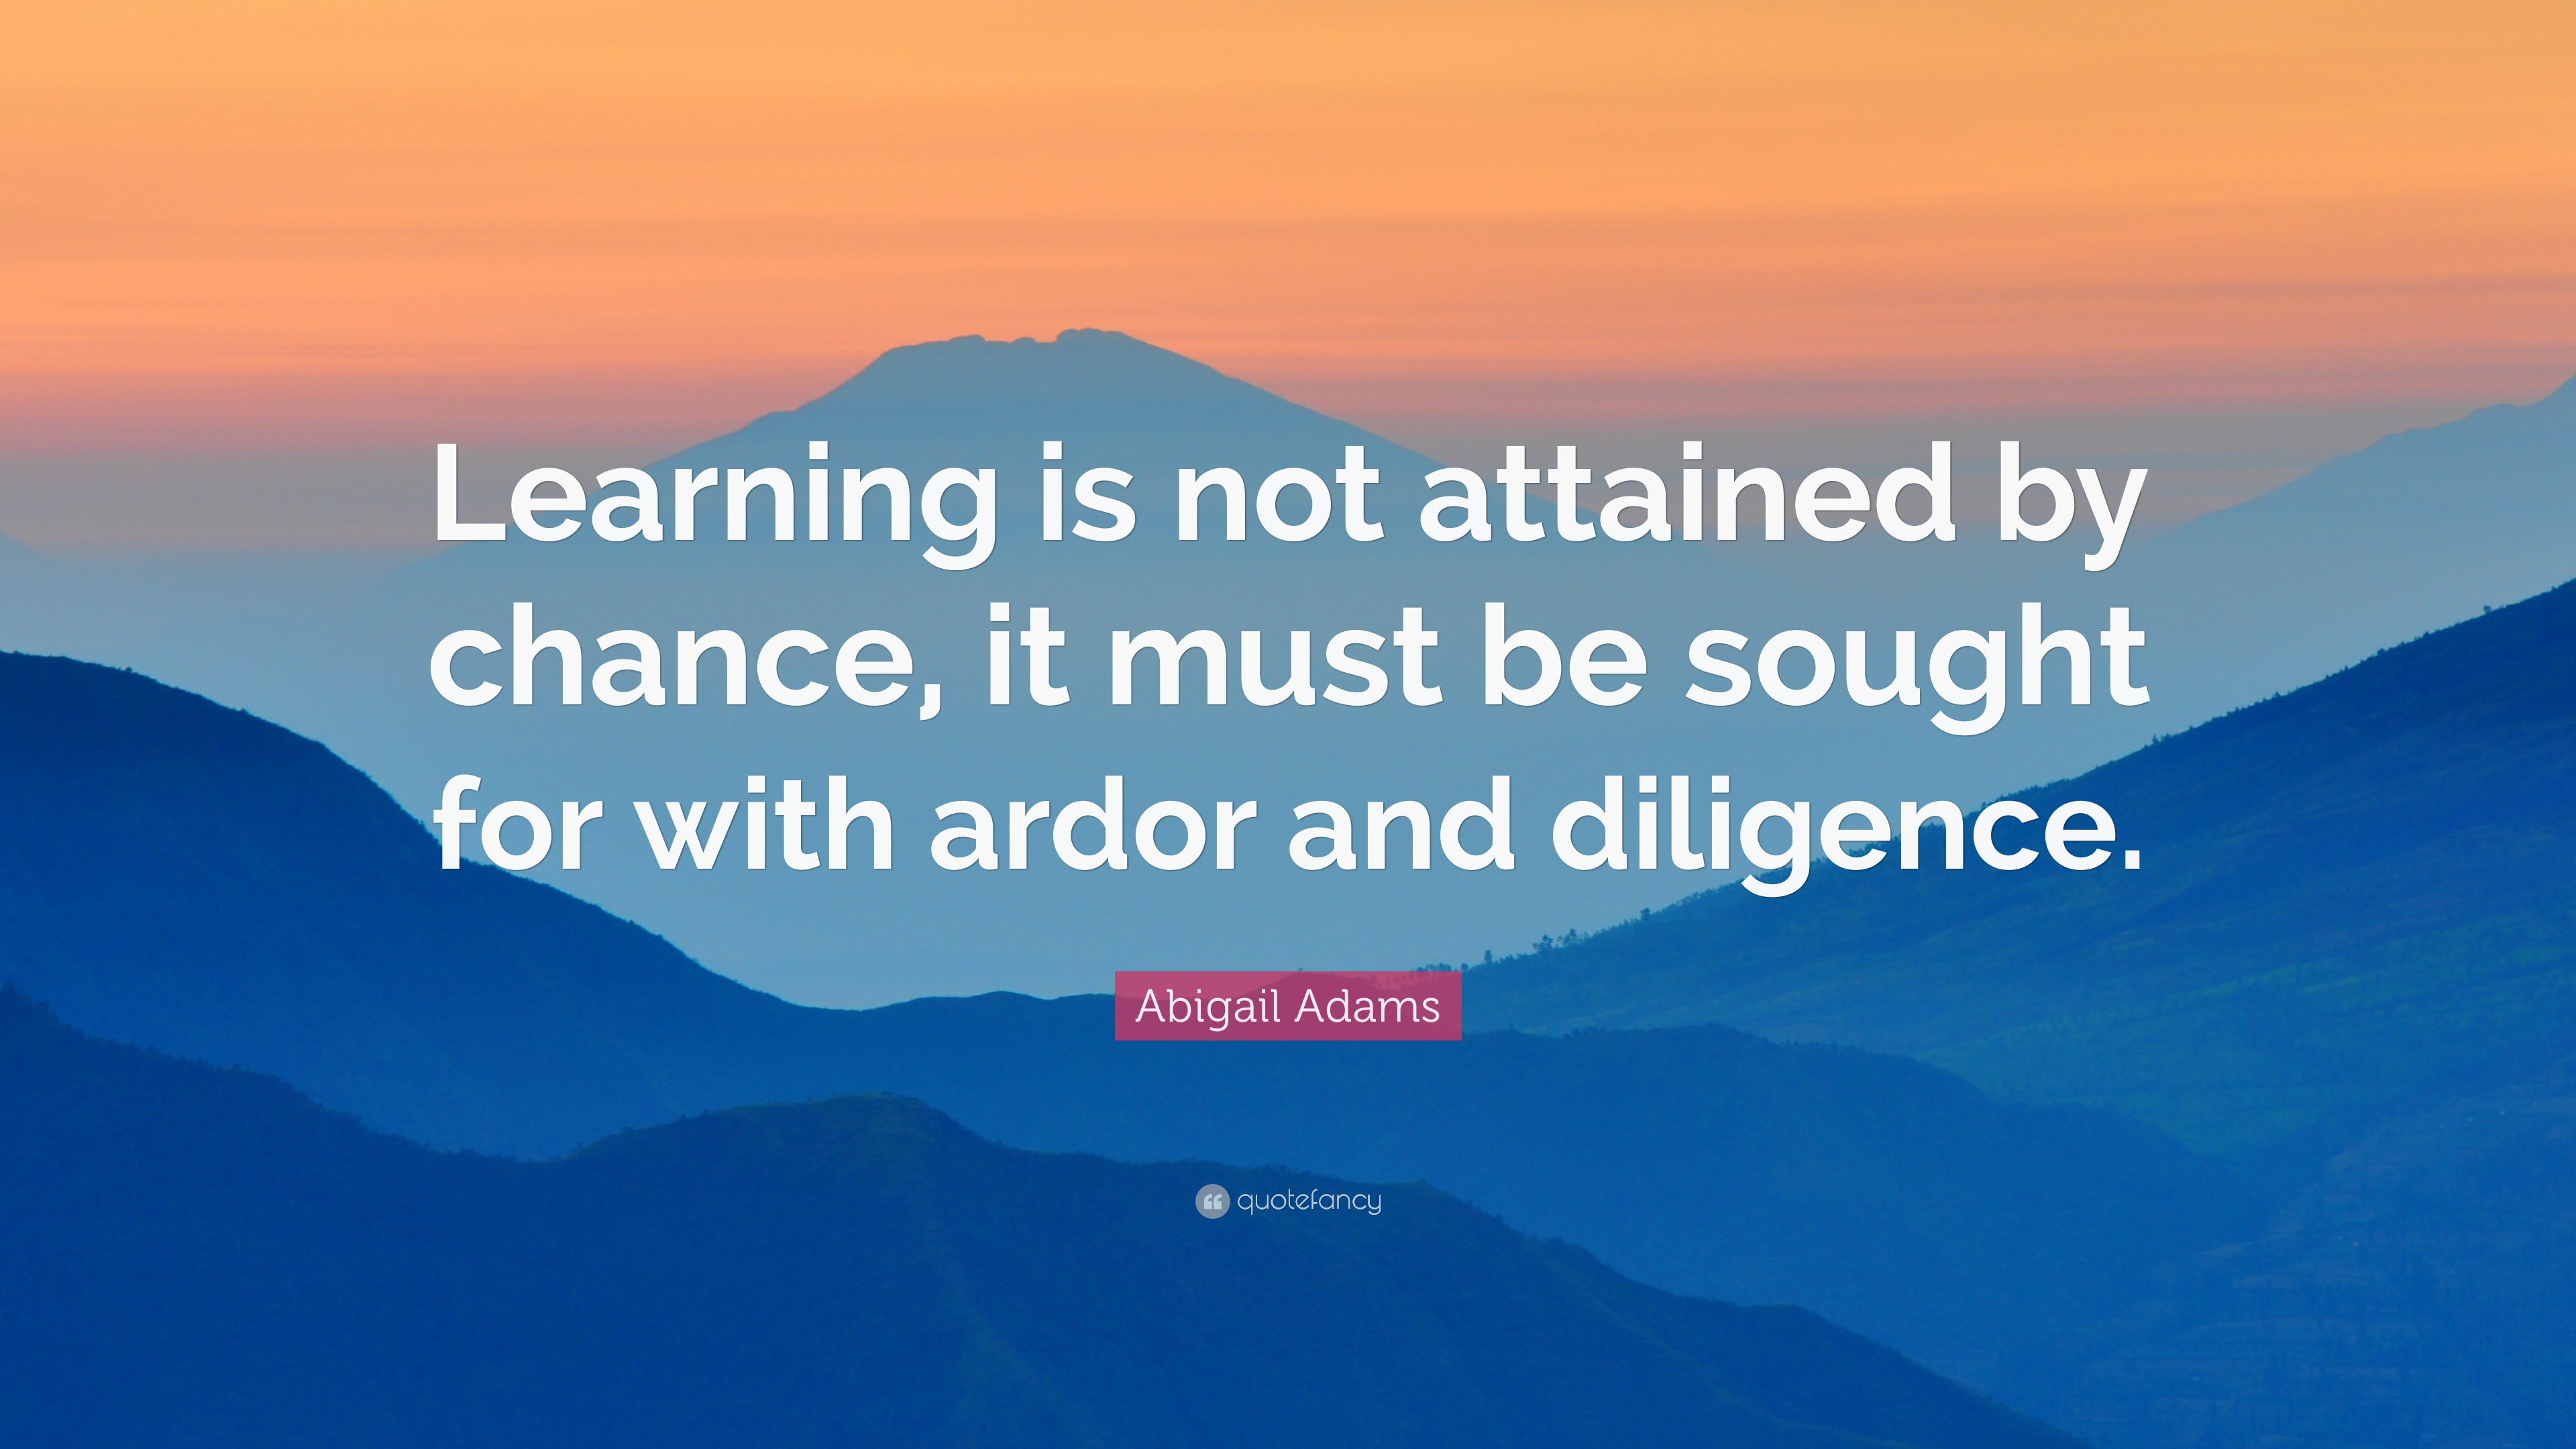 Quotes On Learning Learning Quotes 40 Wallpapers  Quotefancy